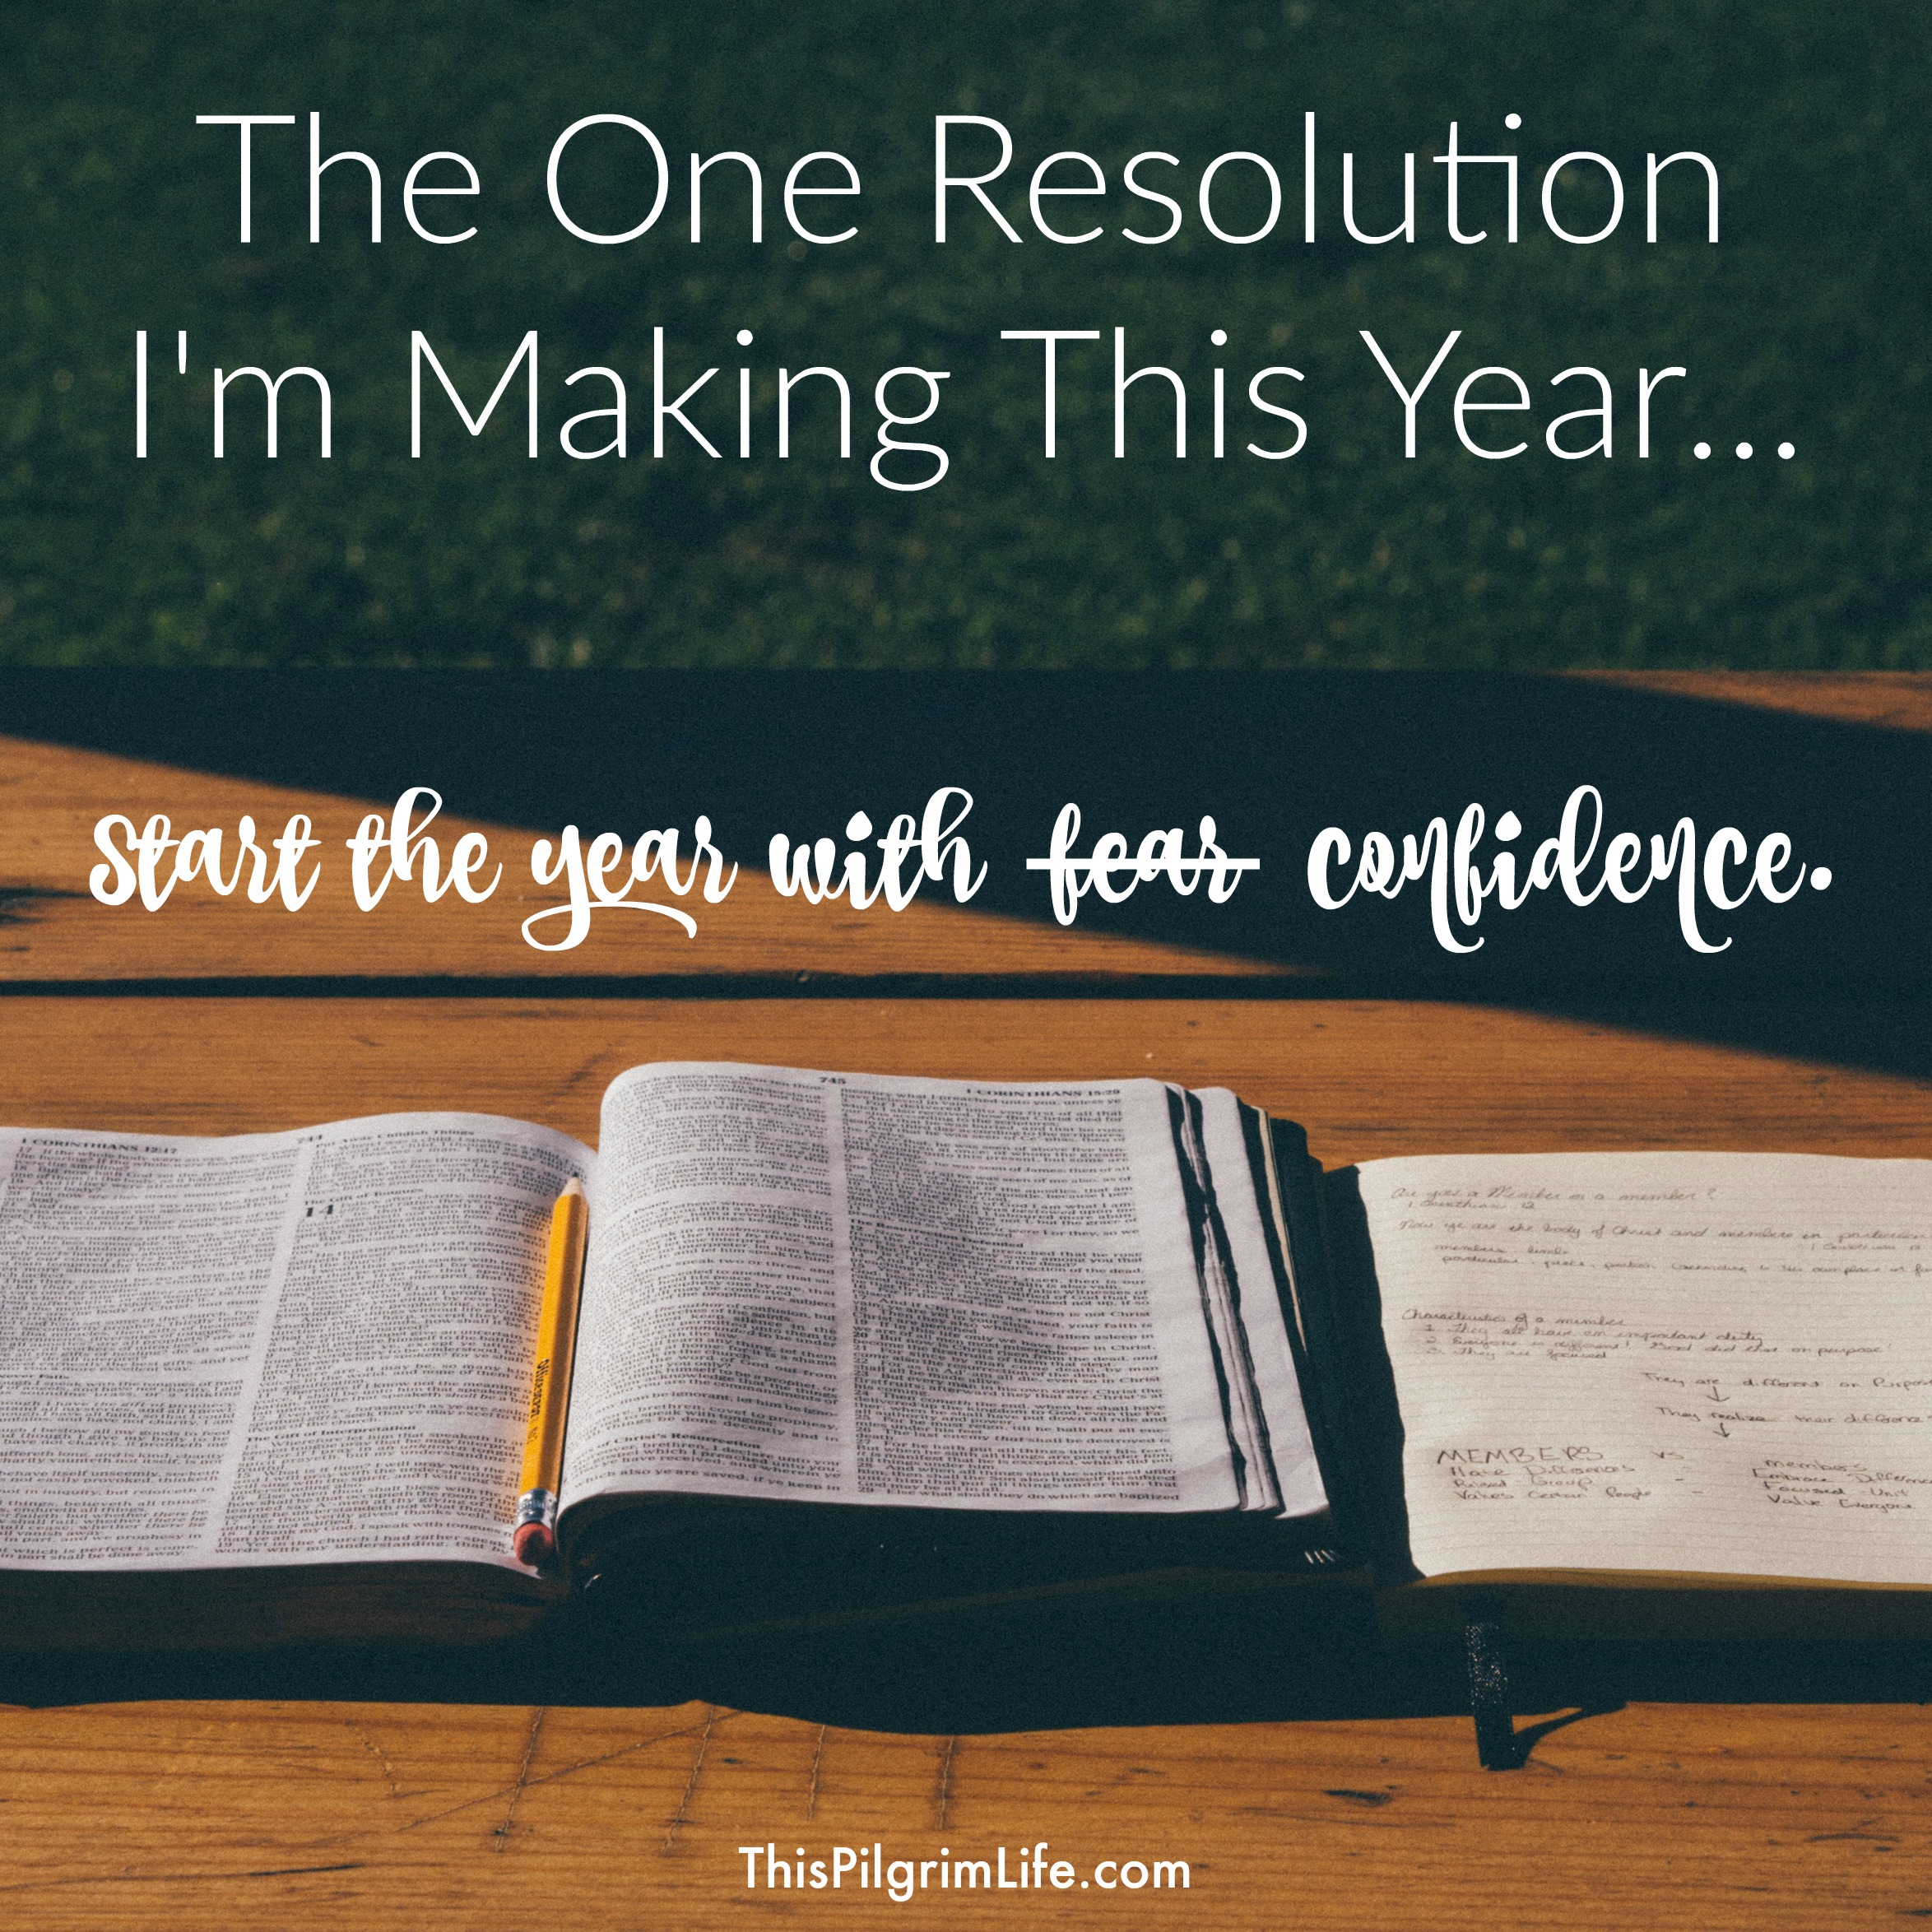 The One Resolution I'm Making This Year…